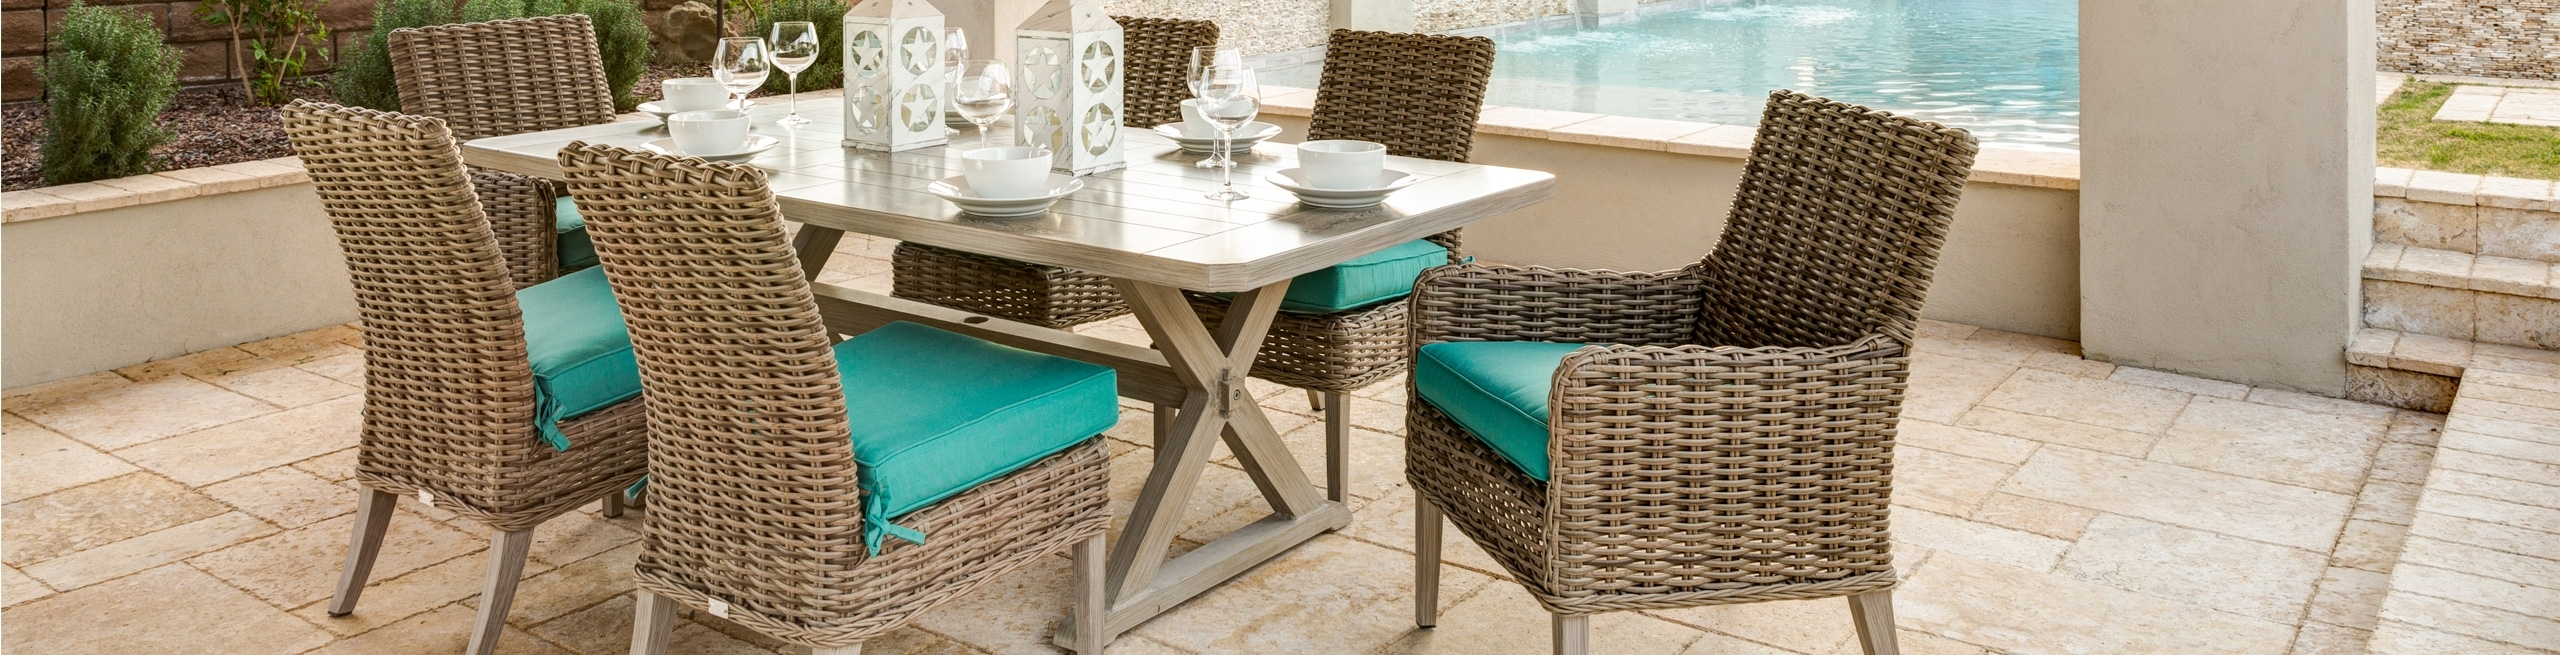 "Ebel Portofino 42"" X 84"" Rectangular Dining Table - Weathered with regard to Fashionable Laurent Rectangle Dining Tables"